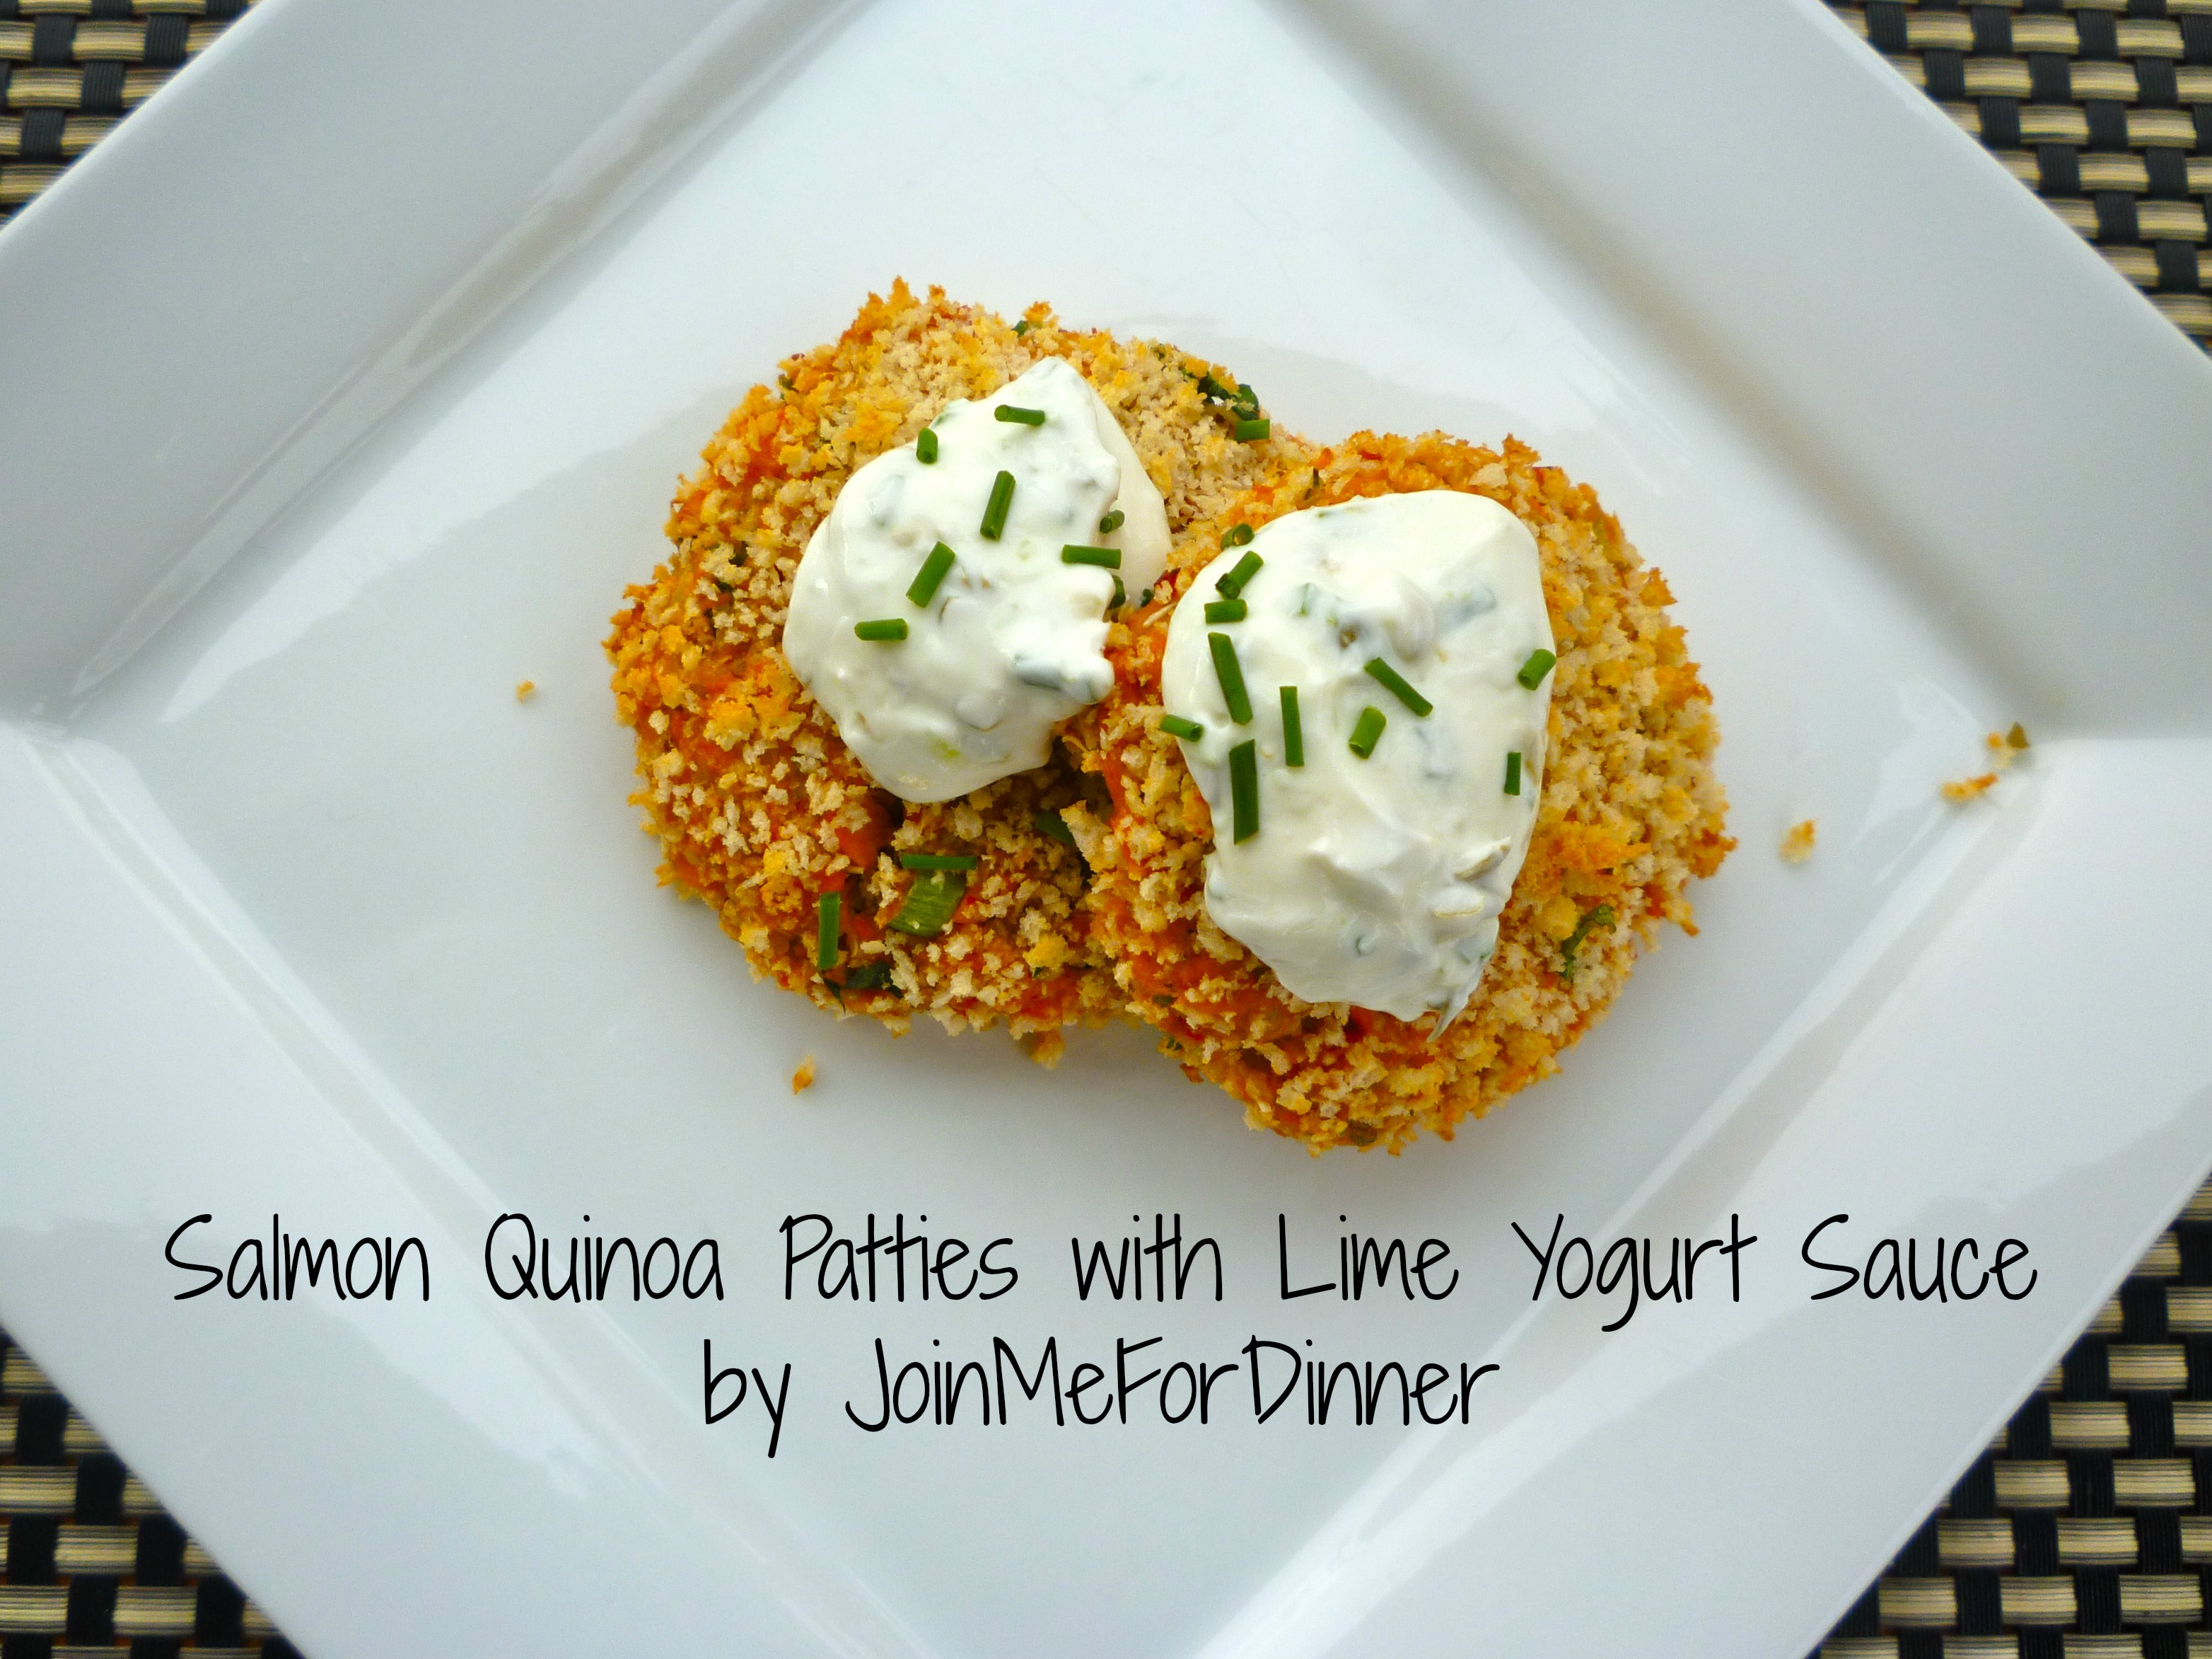 Salmon-Quinoa Patties with Lime Yogurt Sauce | joinmefordinner